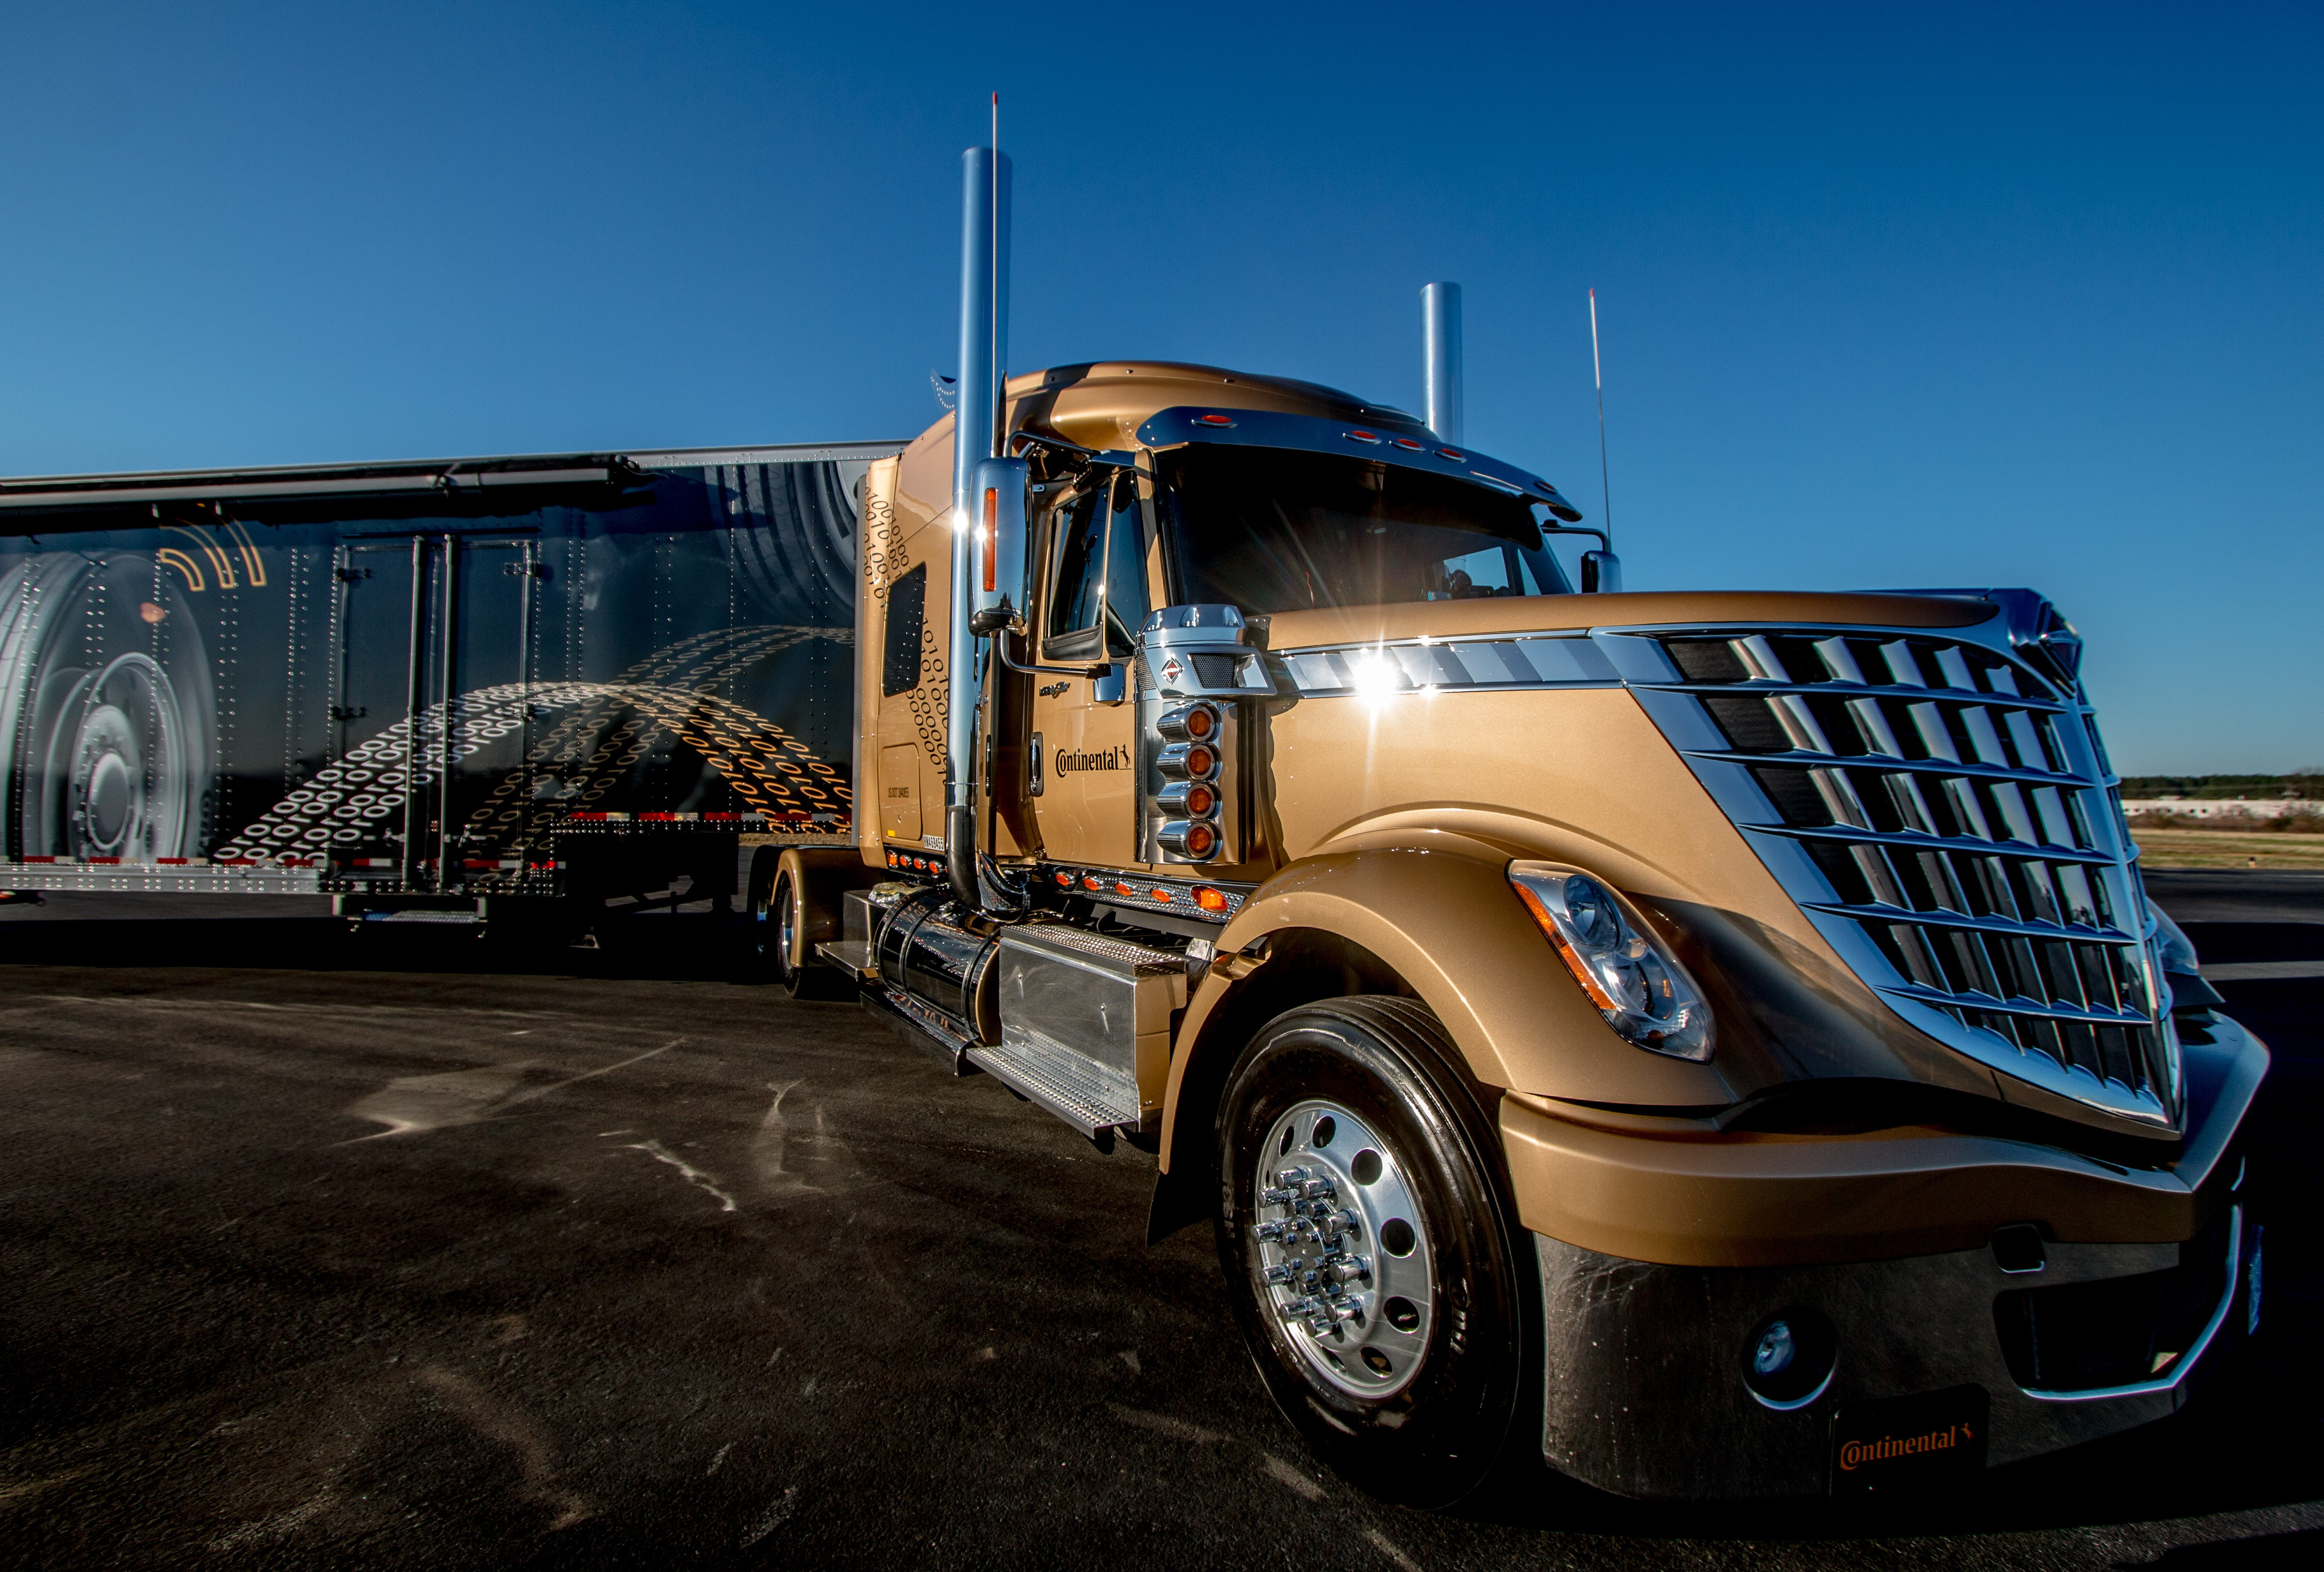 Truck Tire Market Report: 'We Are Continuing to Move Forward,' says Continental's Williams